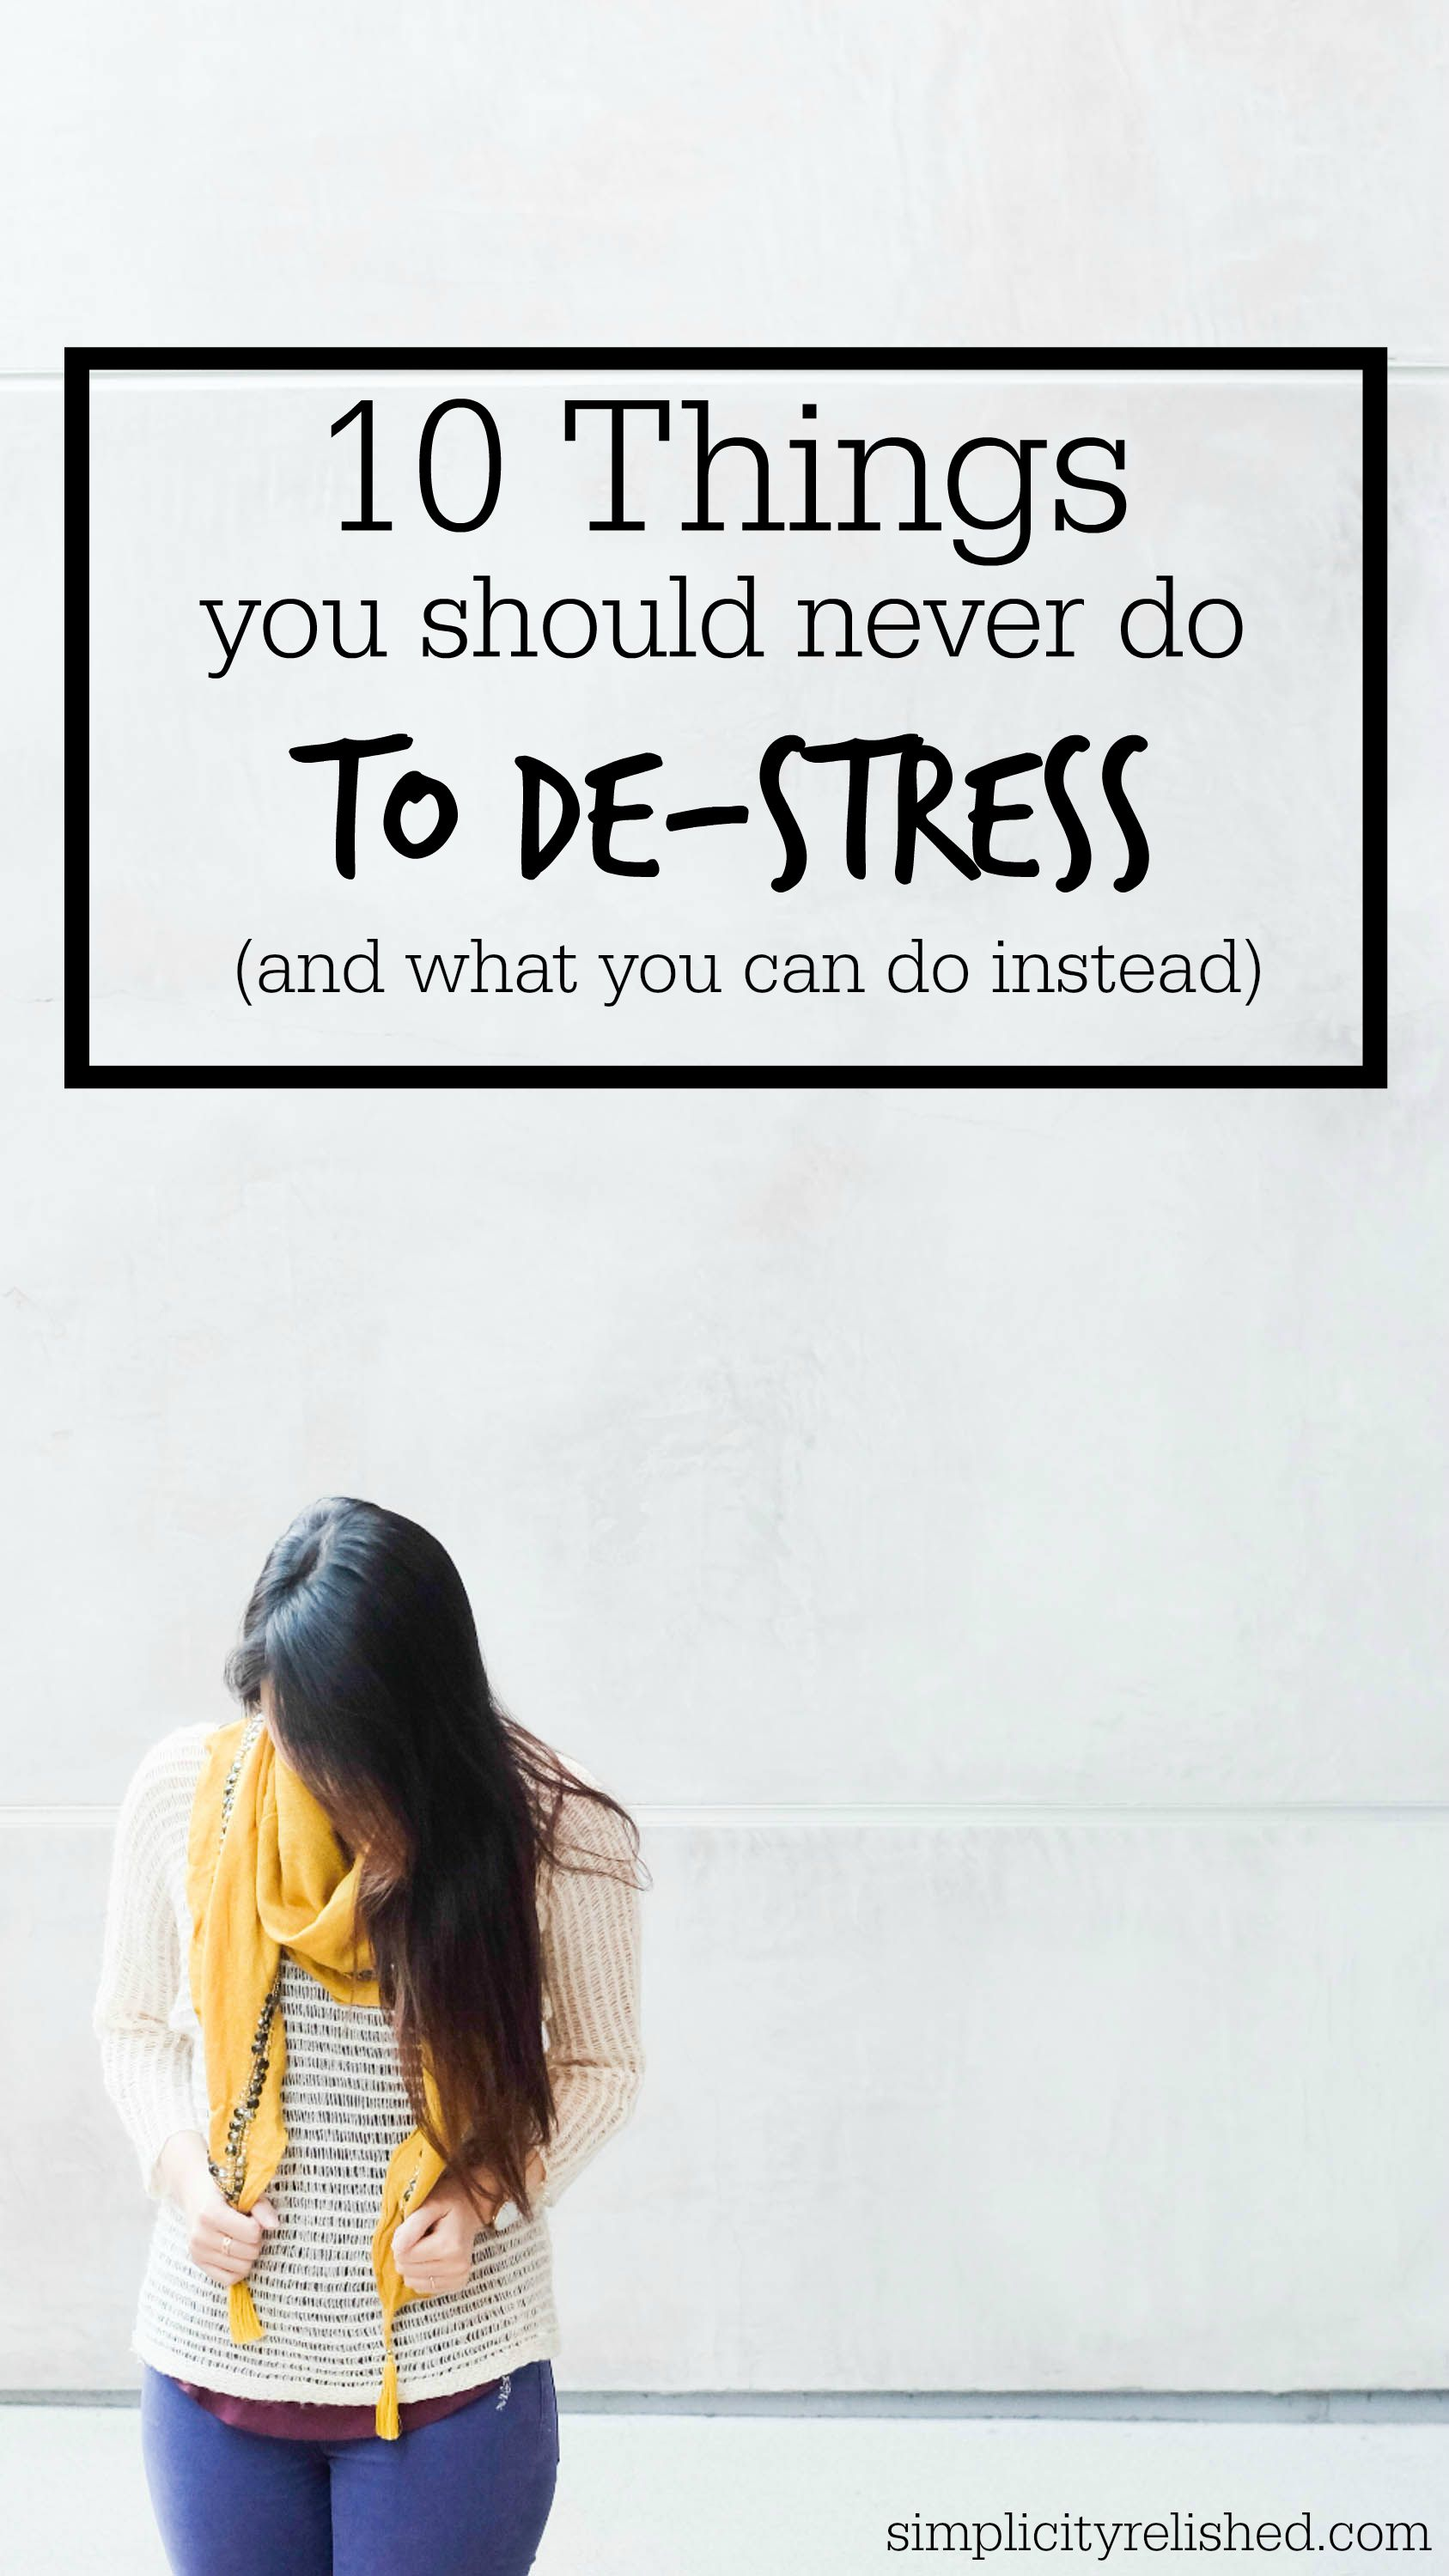 10 things you should never do to eliminate stress- and what you can do instead